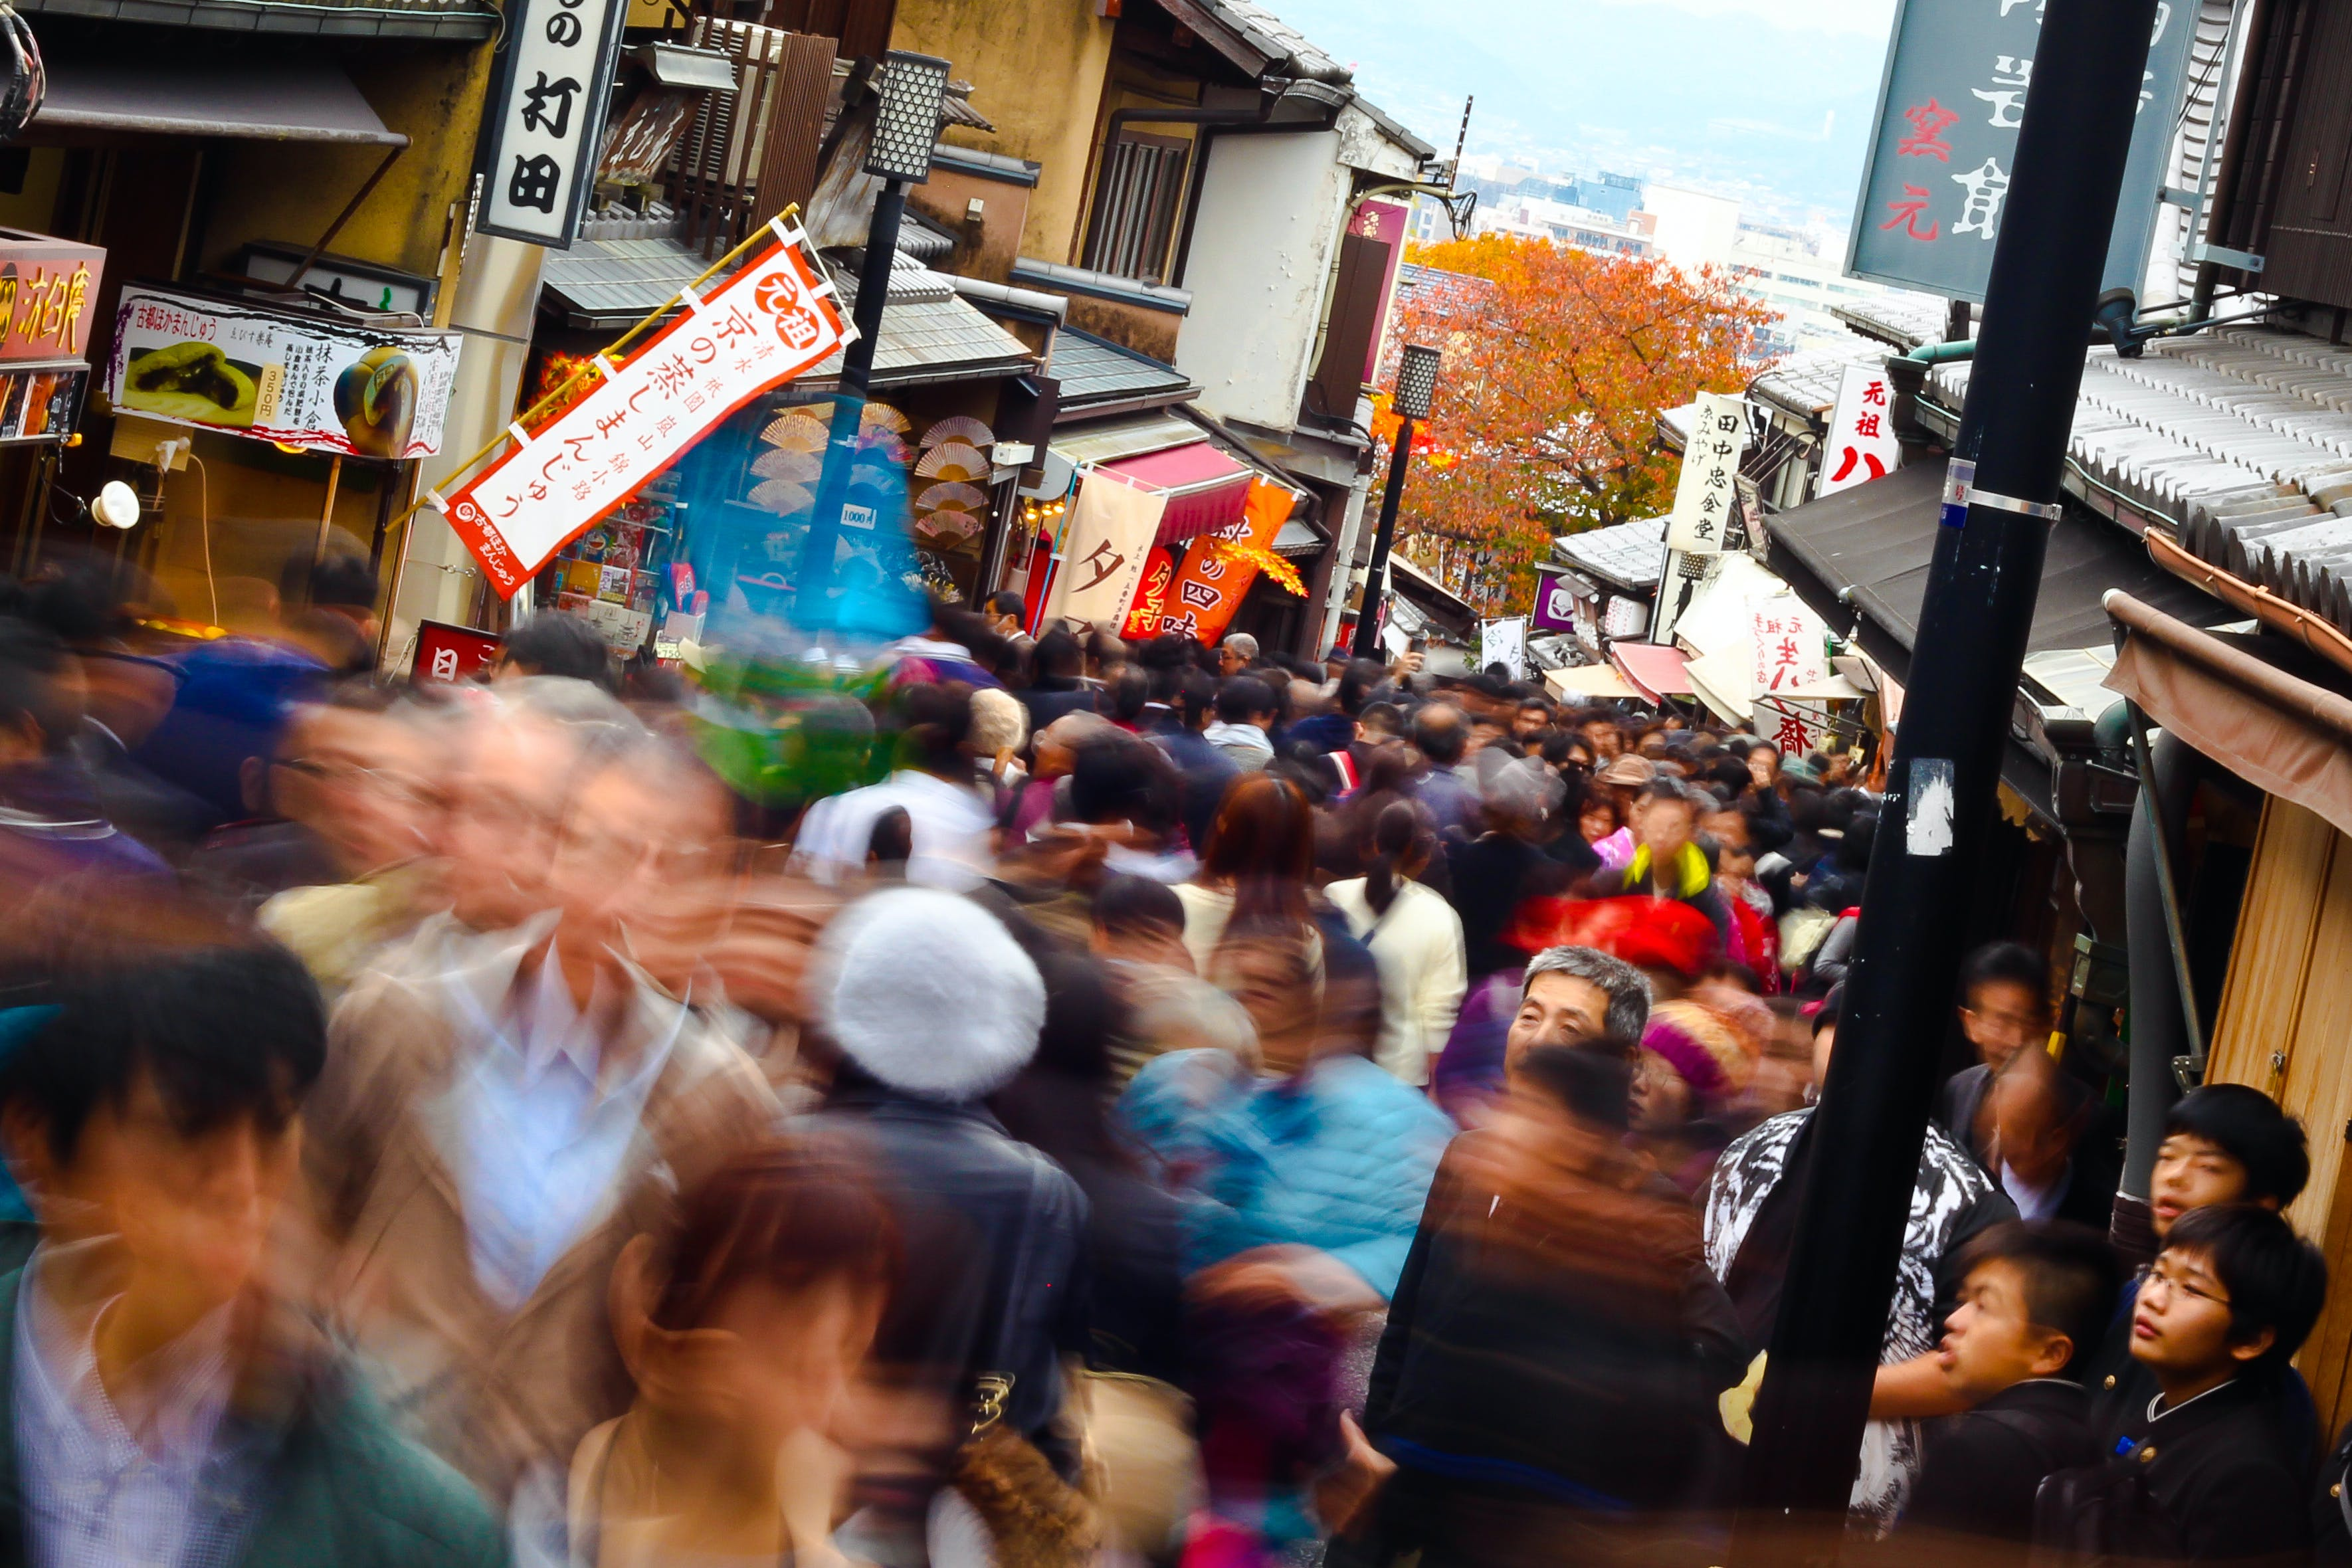 Free stock photo of busy, crowd, crowded, crowded street